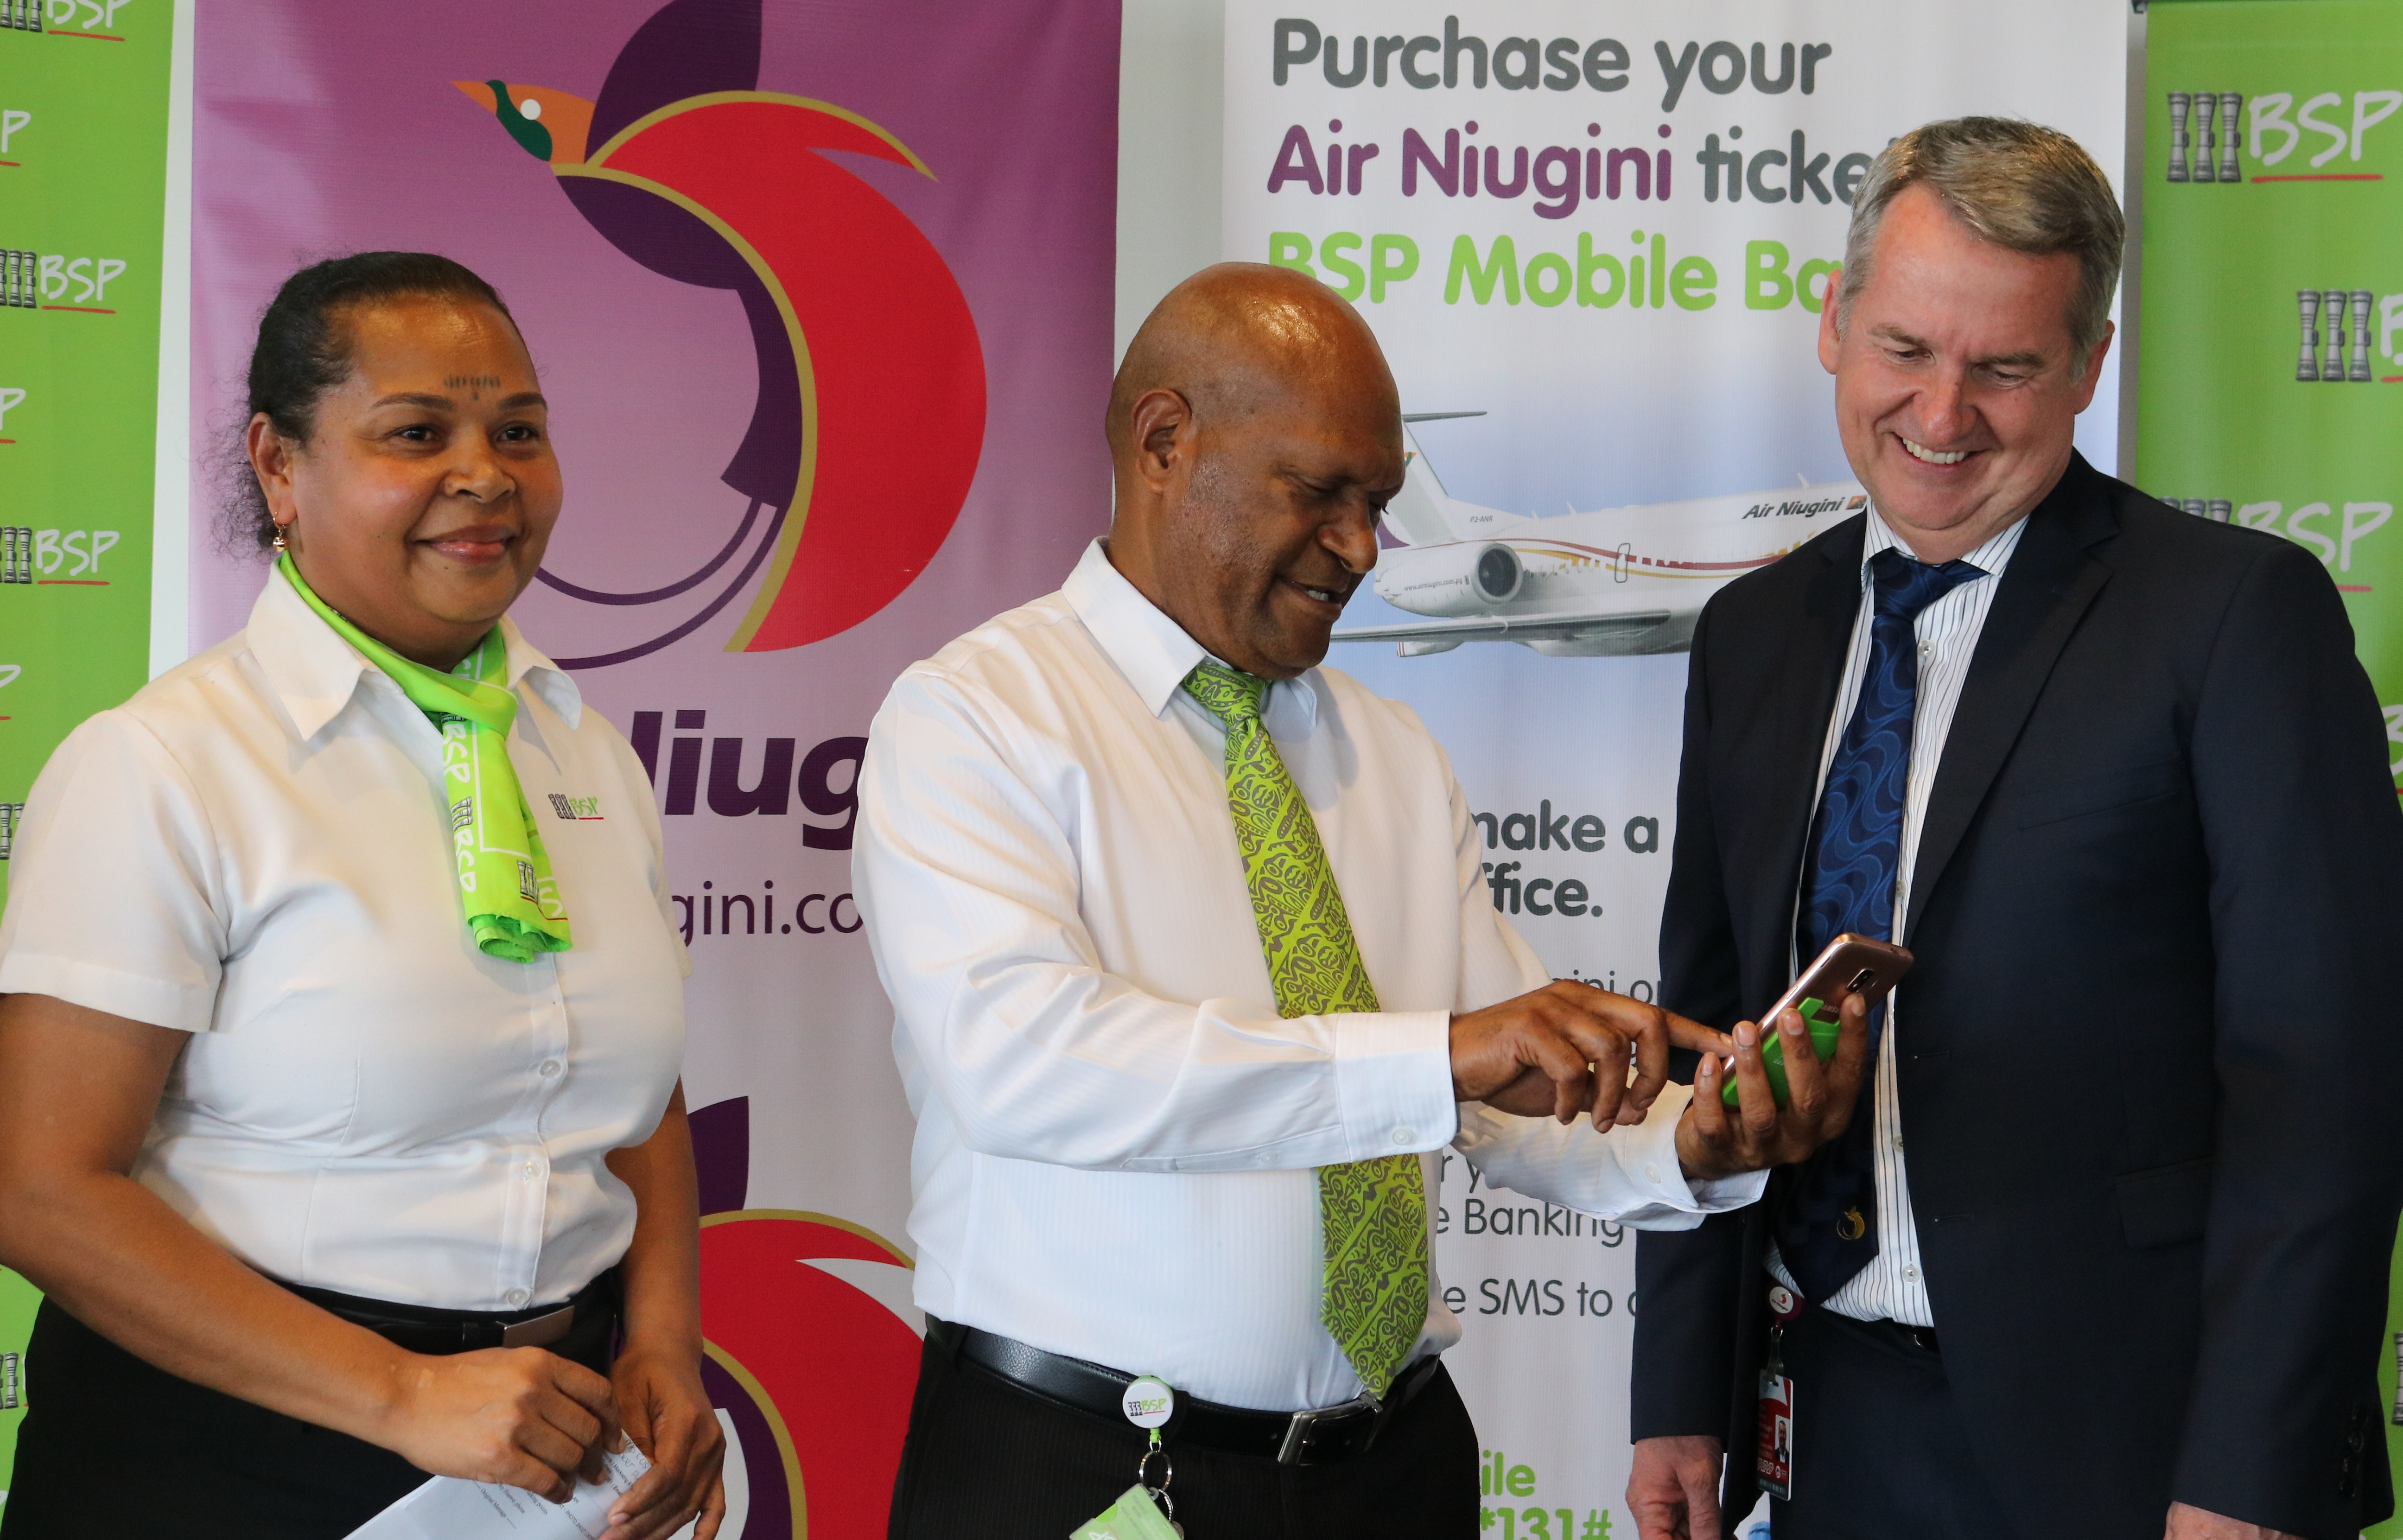 Mobile Ticketing Relaunched